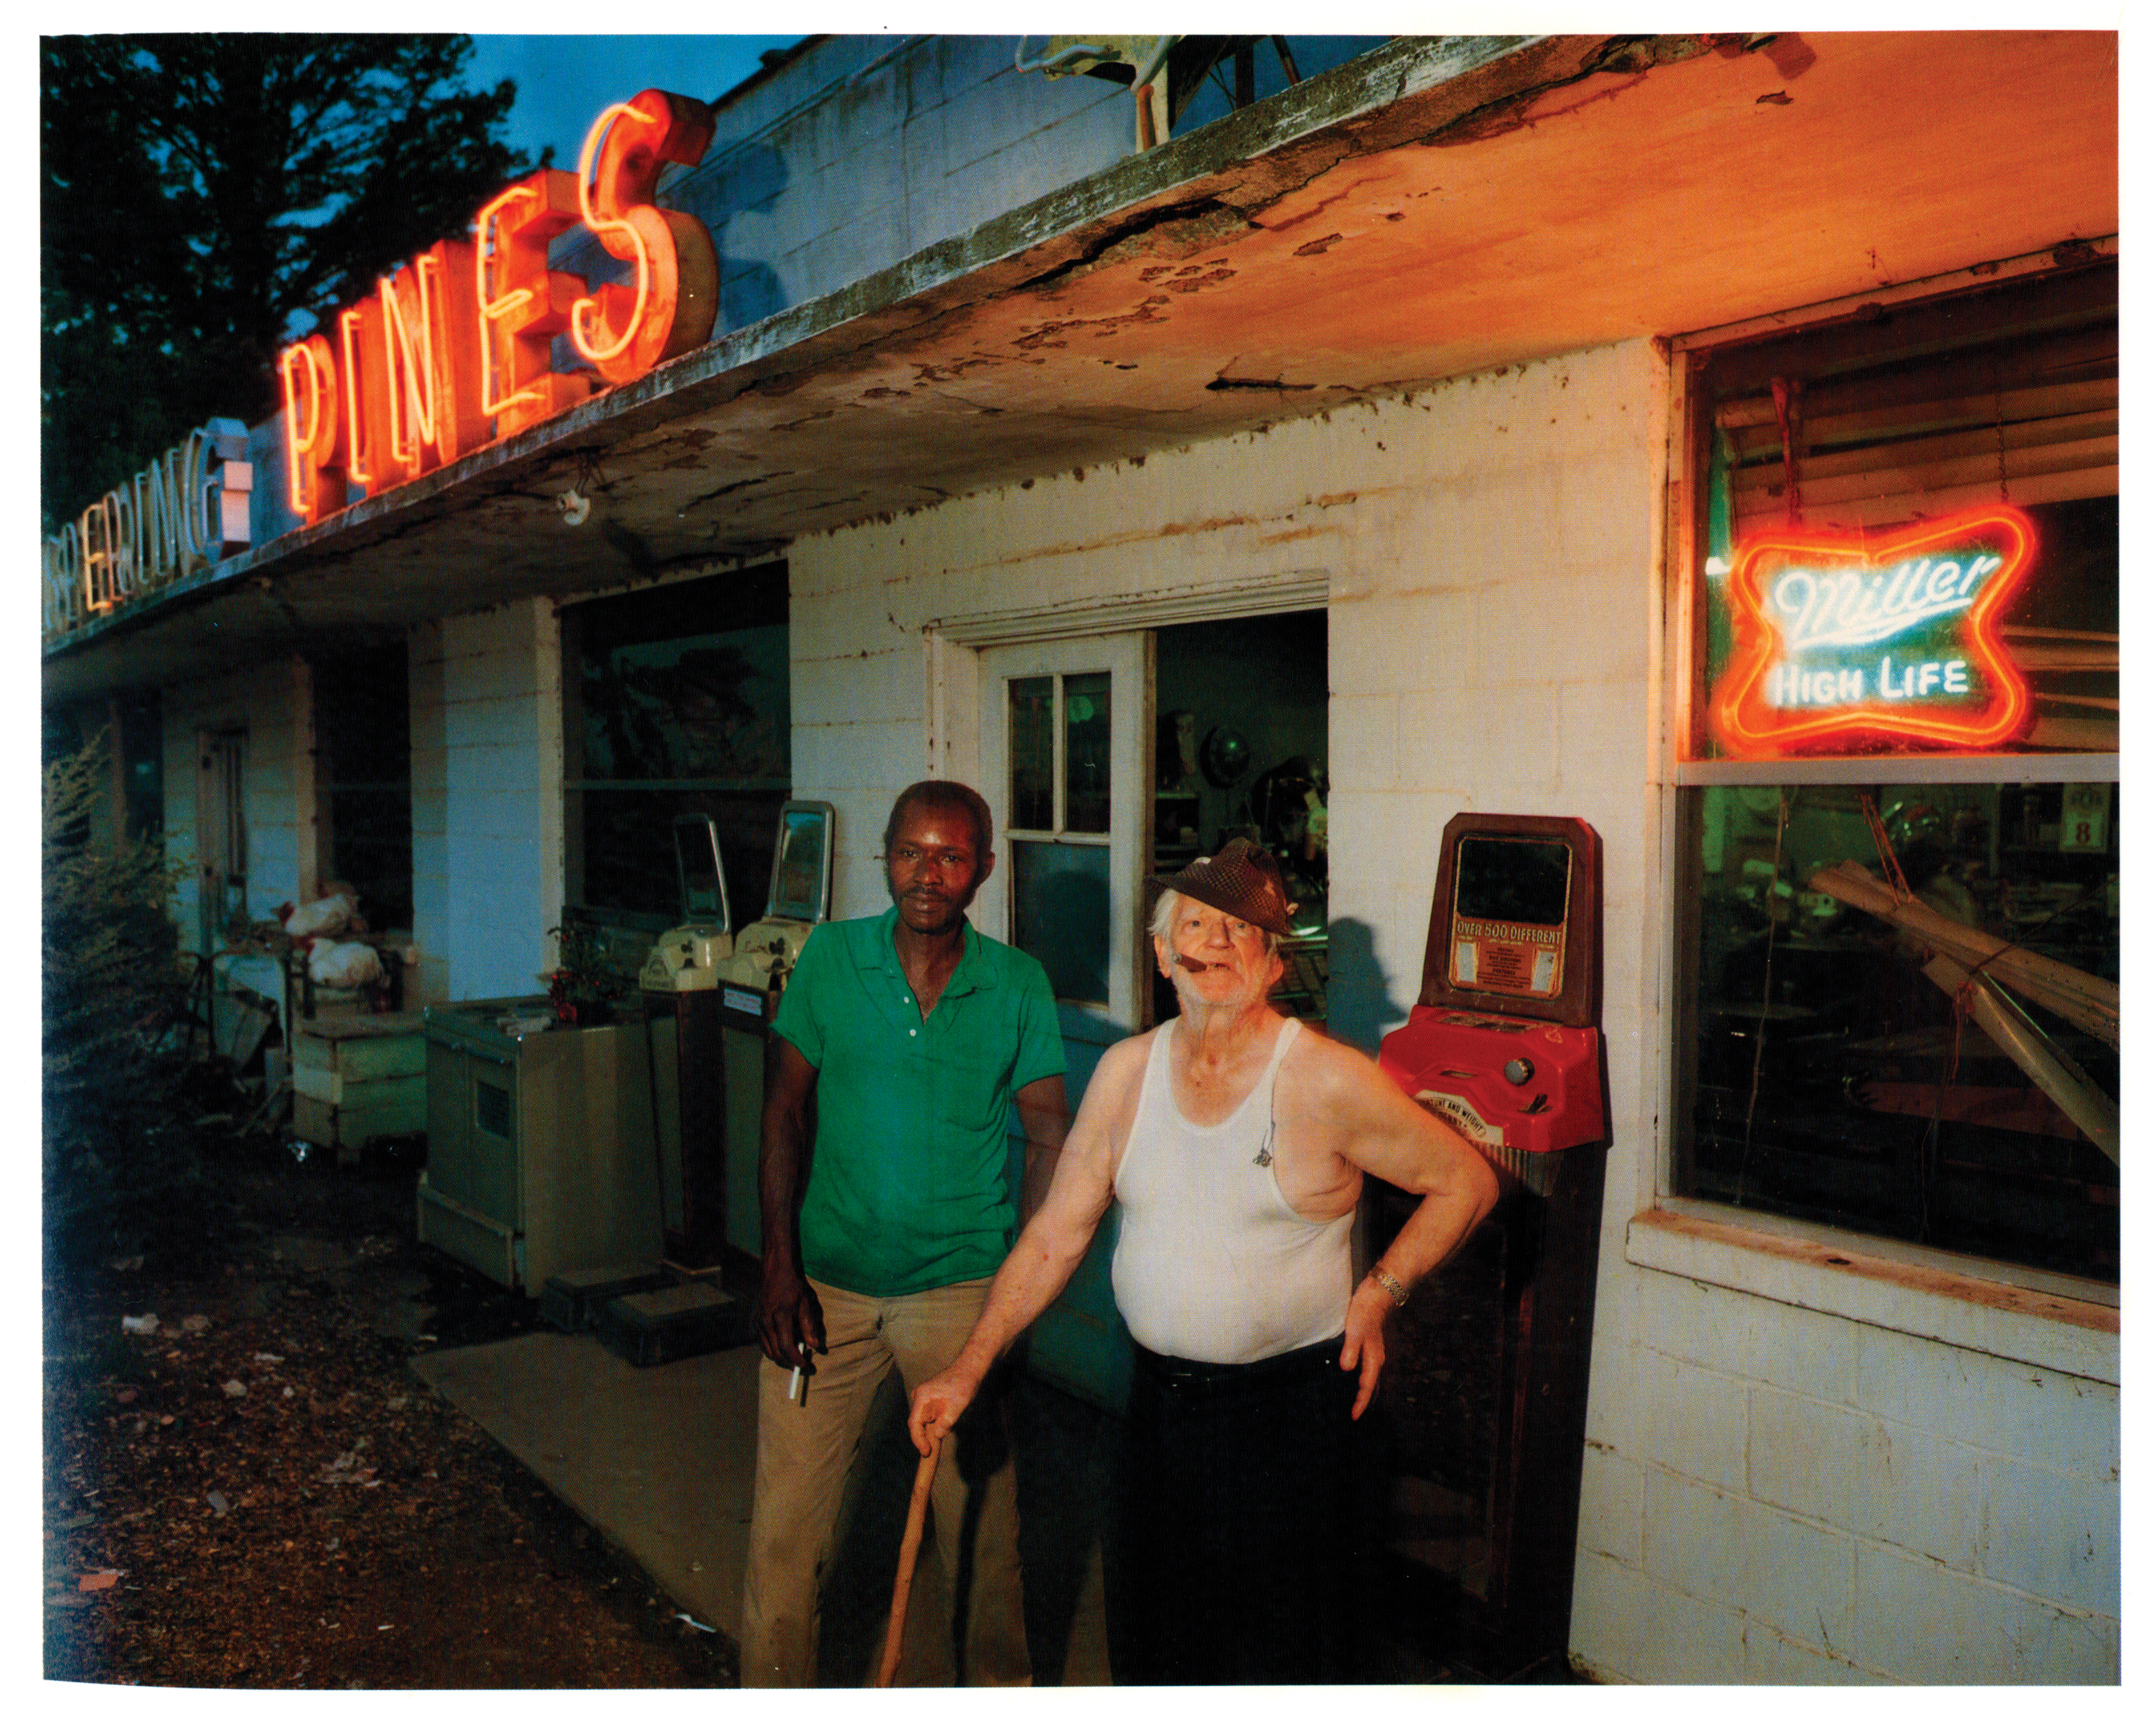 Blue and T.P., Lowndes County, Mississippi, Summer 1986. Photo by Birney Imes.